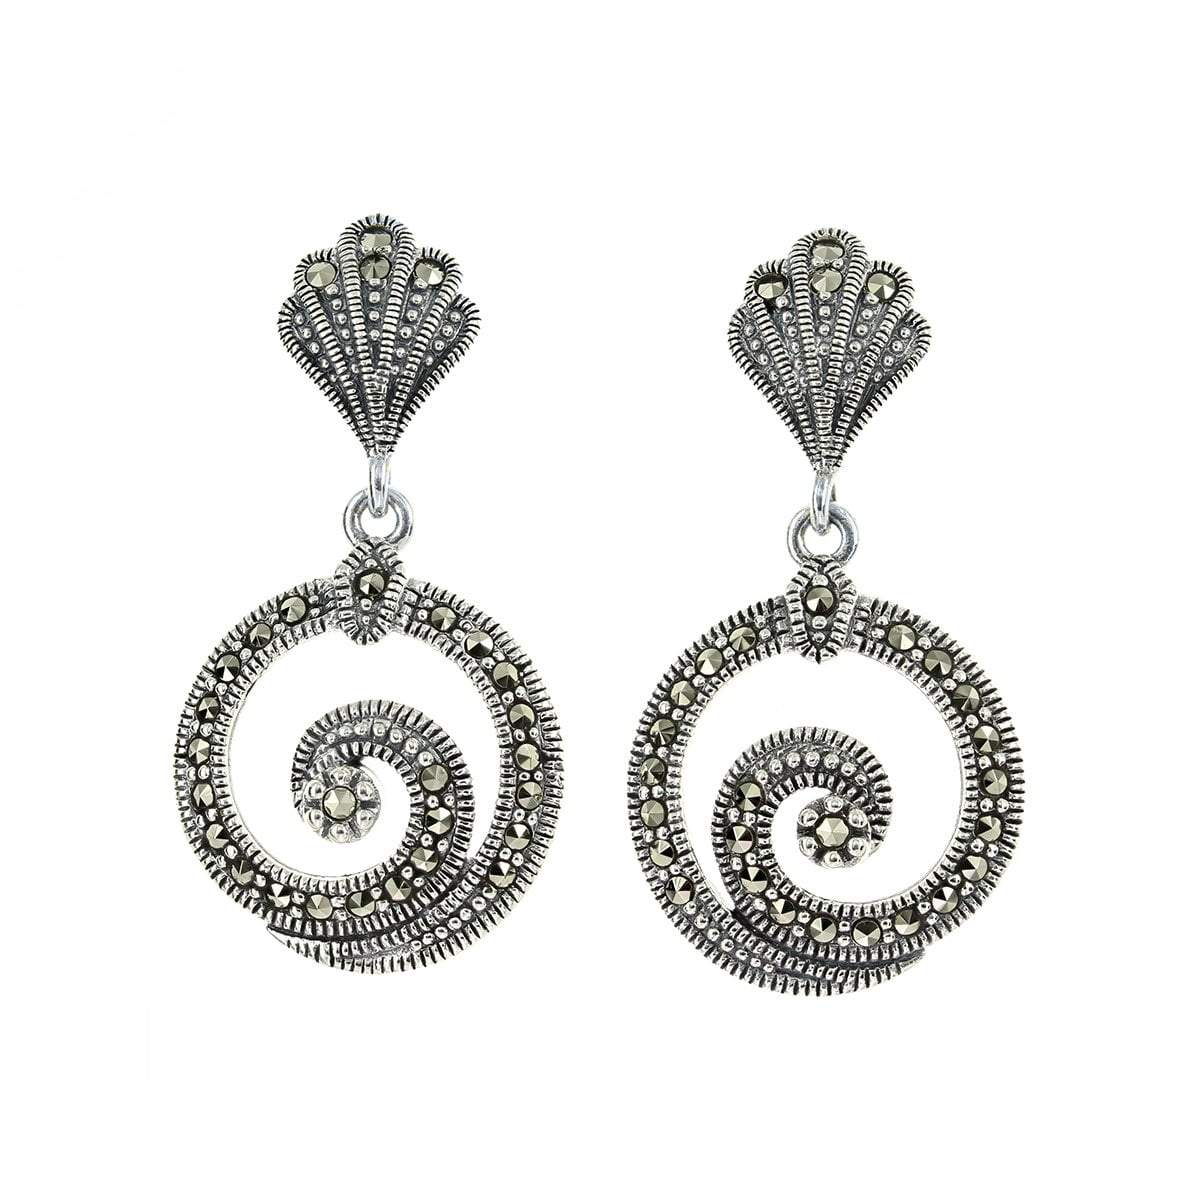 Marcasite Collection Earrings Default Title / Silver / Black Marcasite Swirl Earrings in Sterling Silver